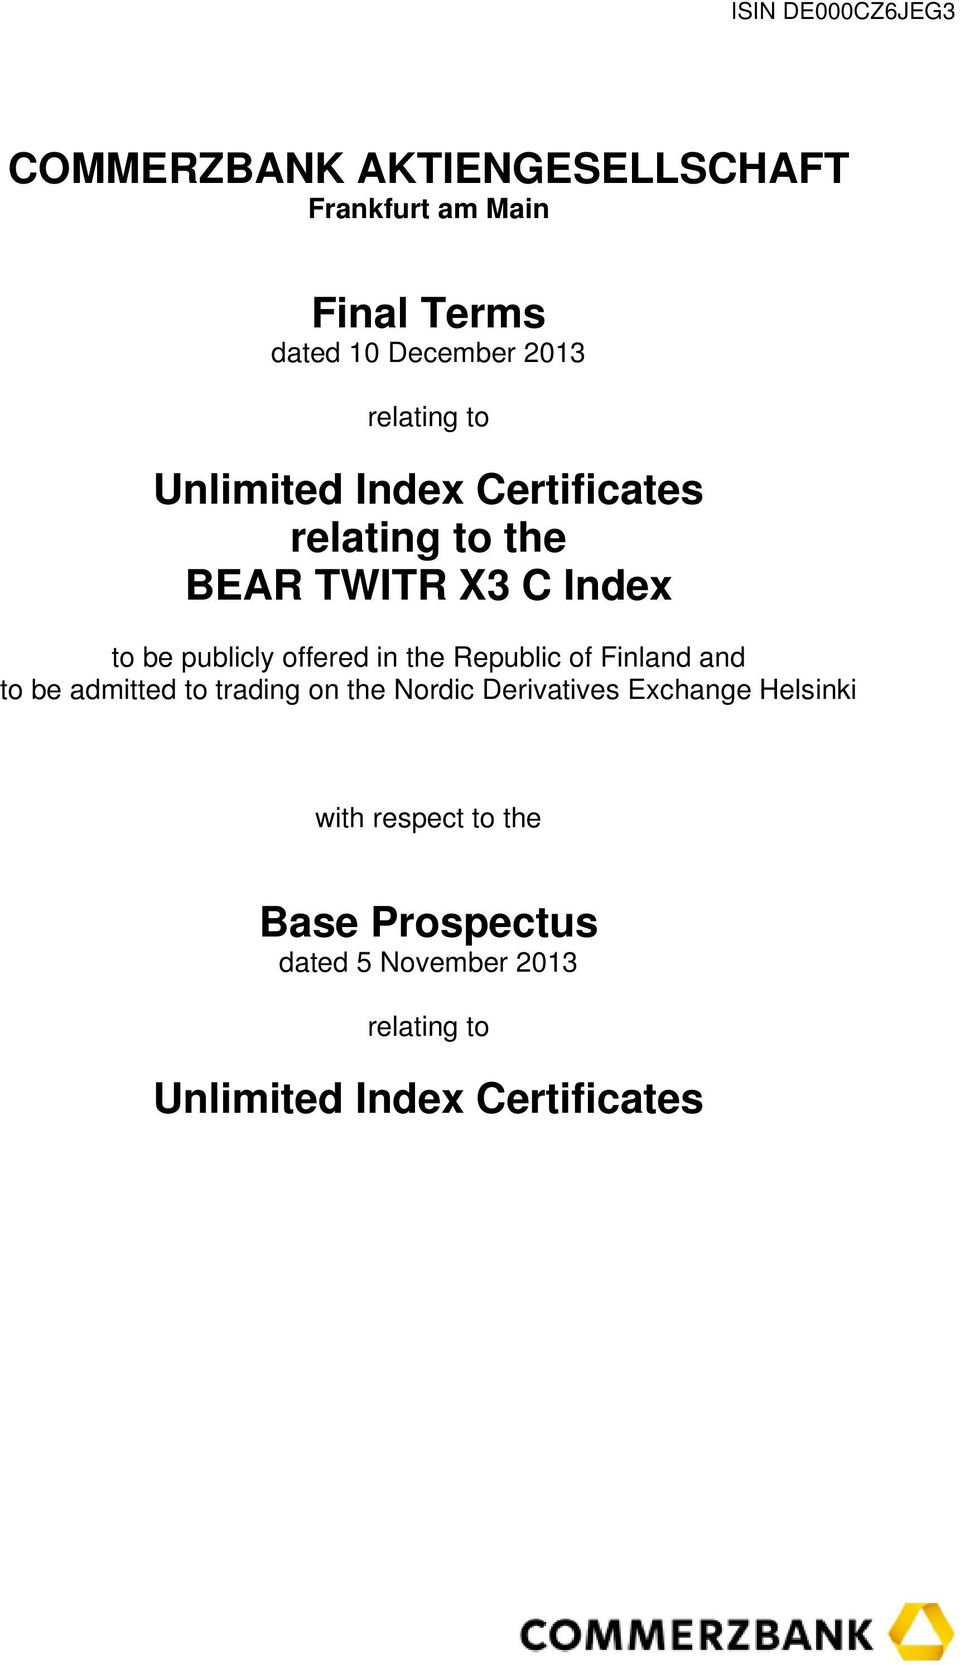 Republic of Finland and to be admitted to trading on the Nordic Derivatives Exchange Helsinki